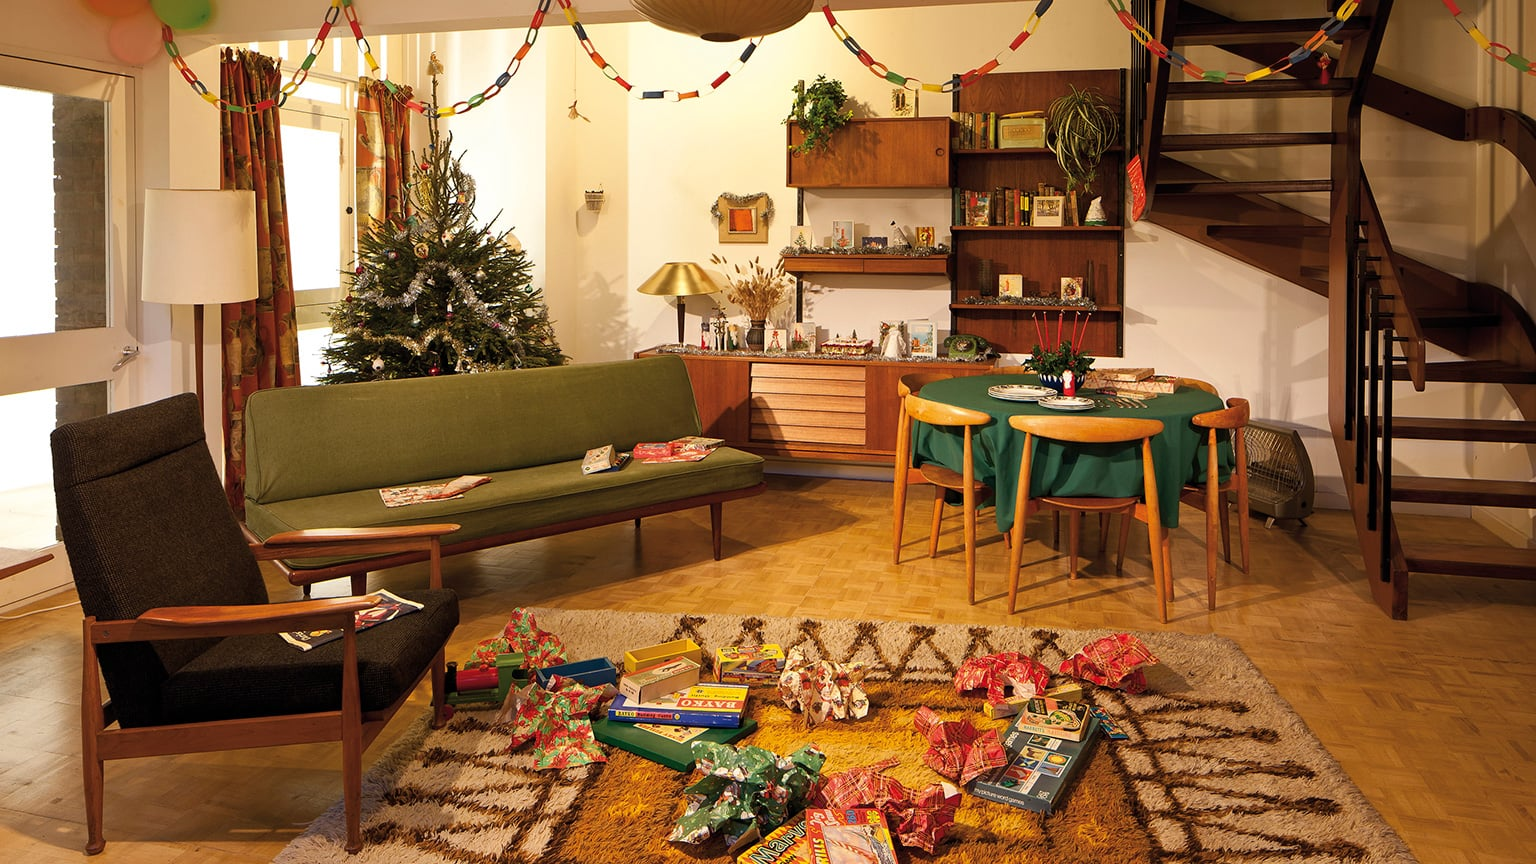 Christmas Past: A living room in 1965